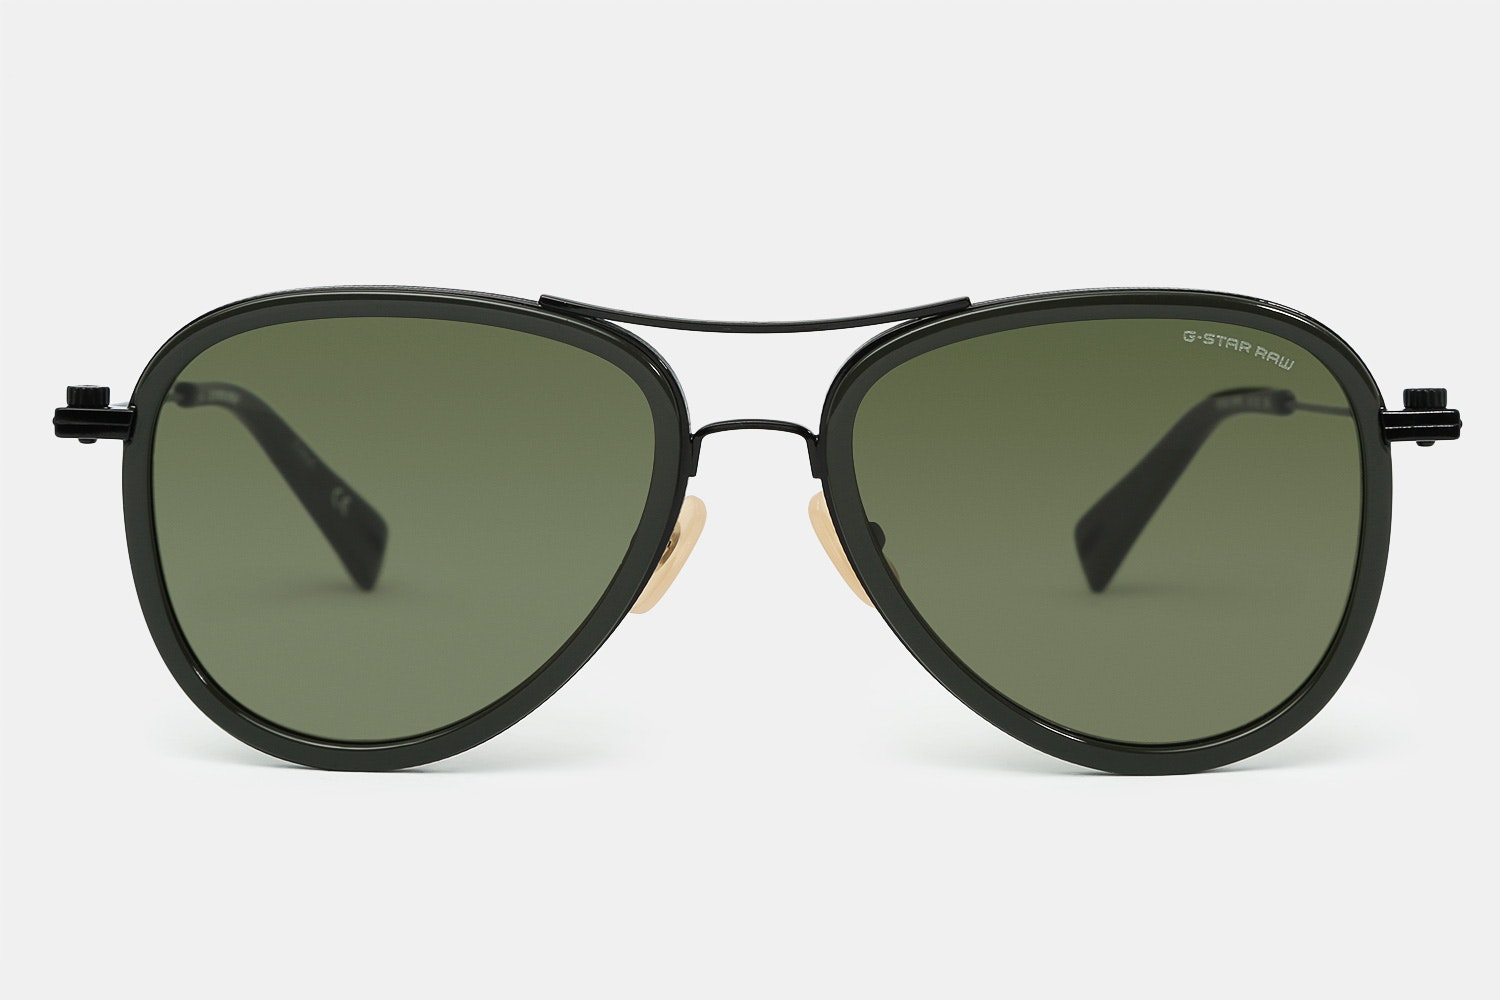 Dark olive frame with green lenses